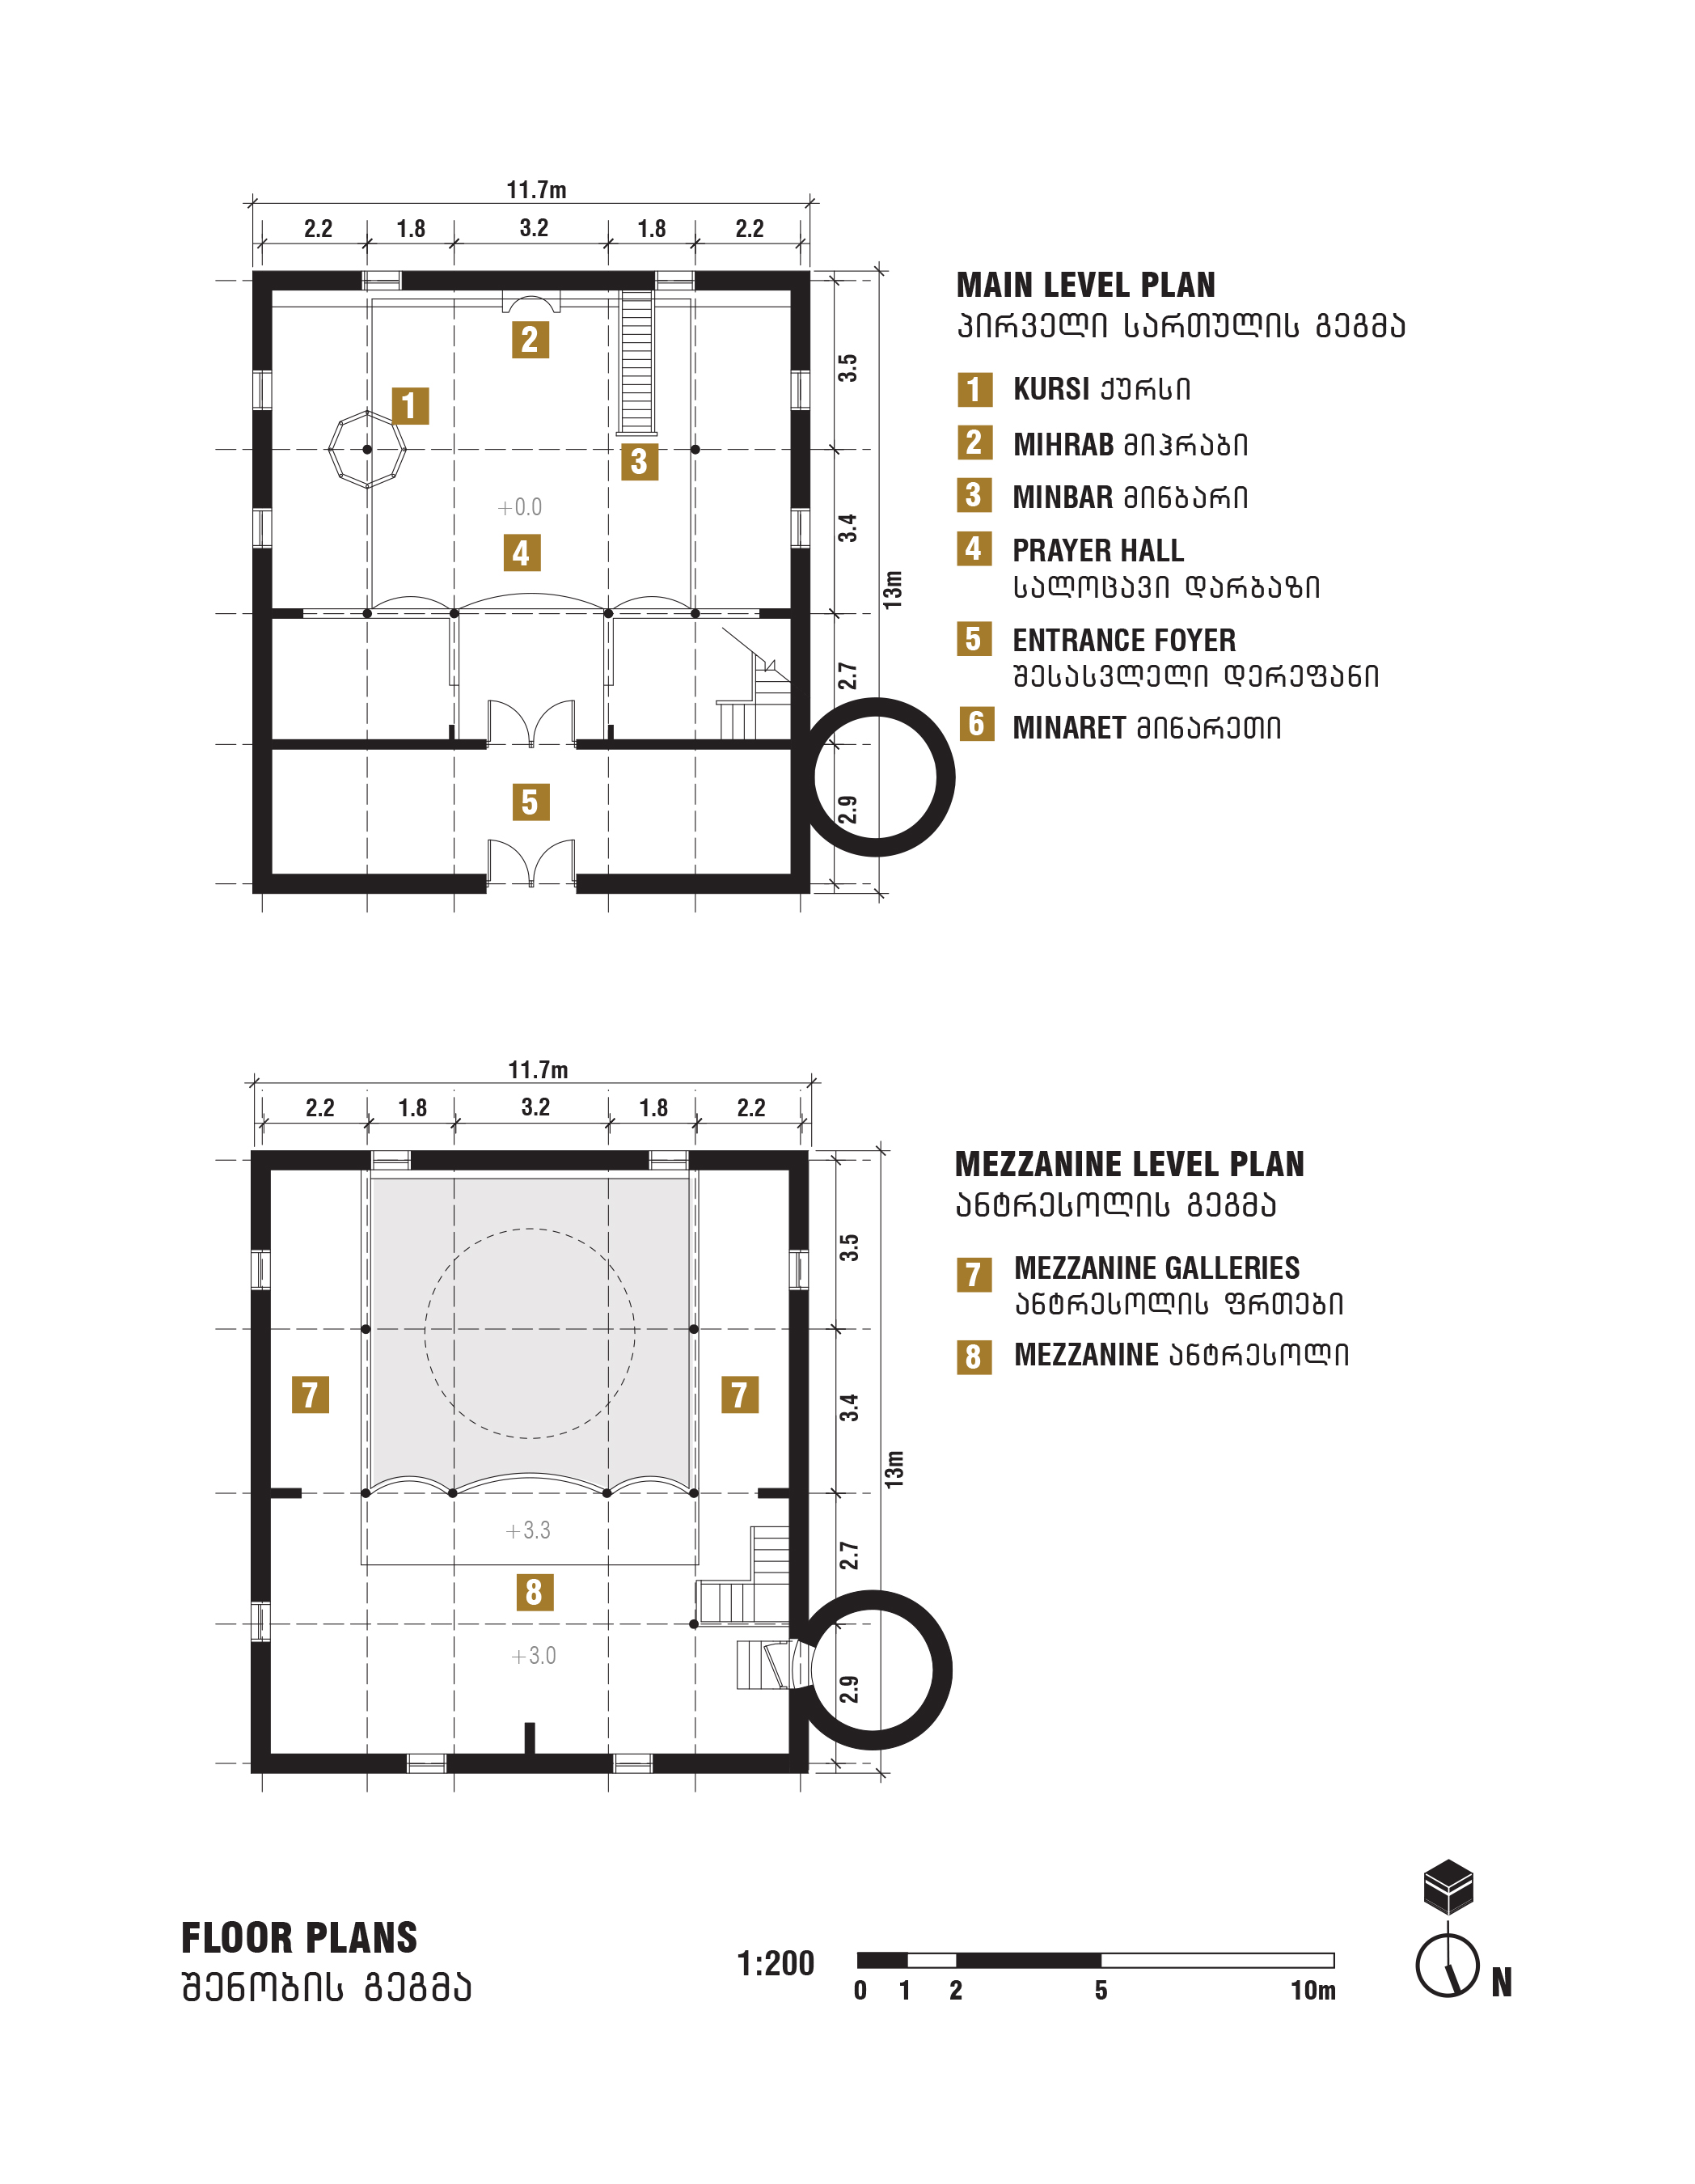 AGARA_Floorplans 1-200 copy.JPG